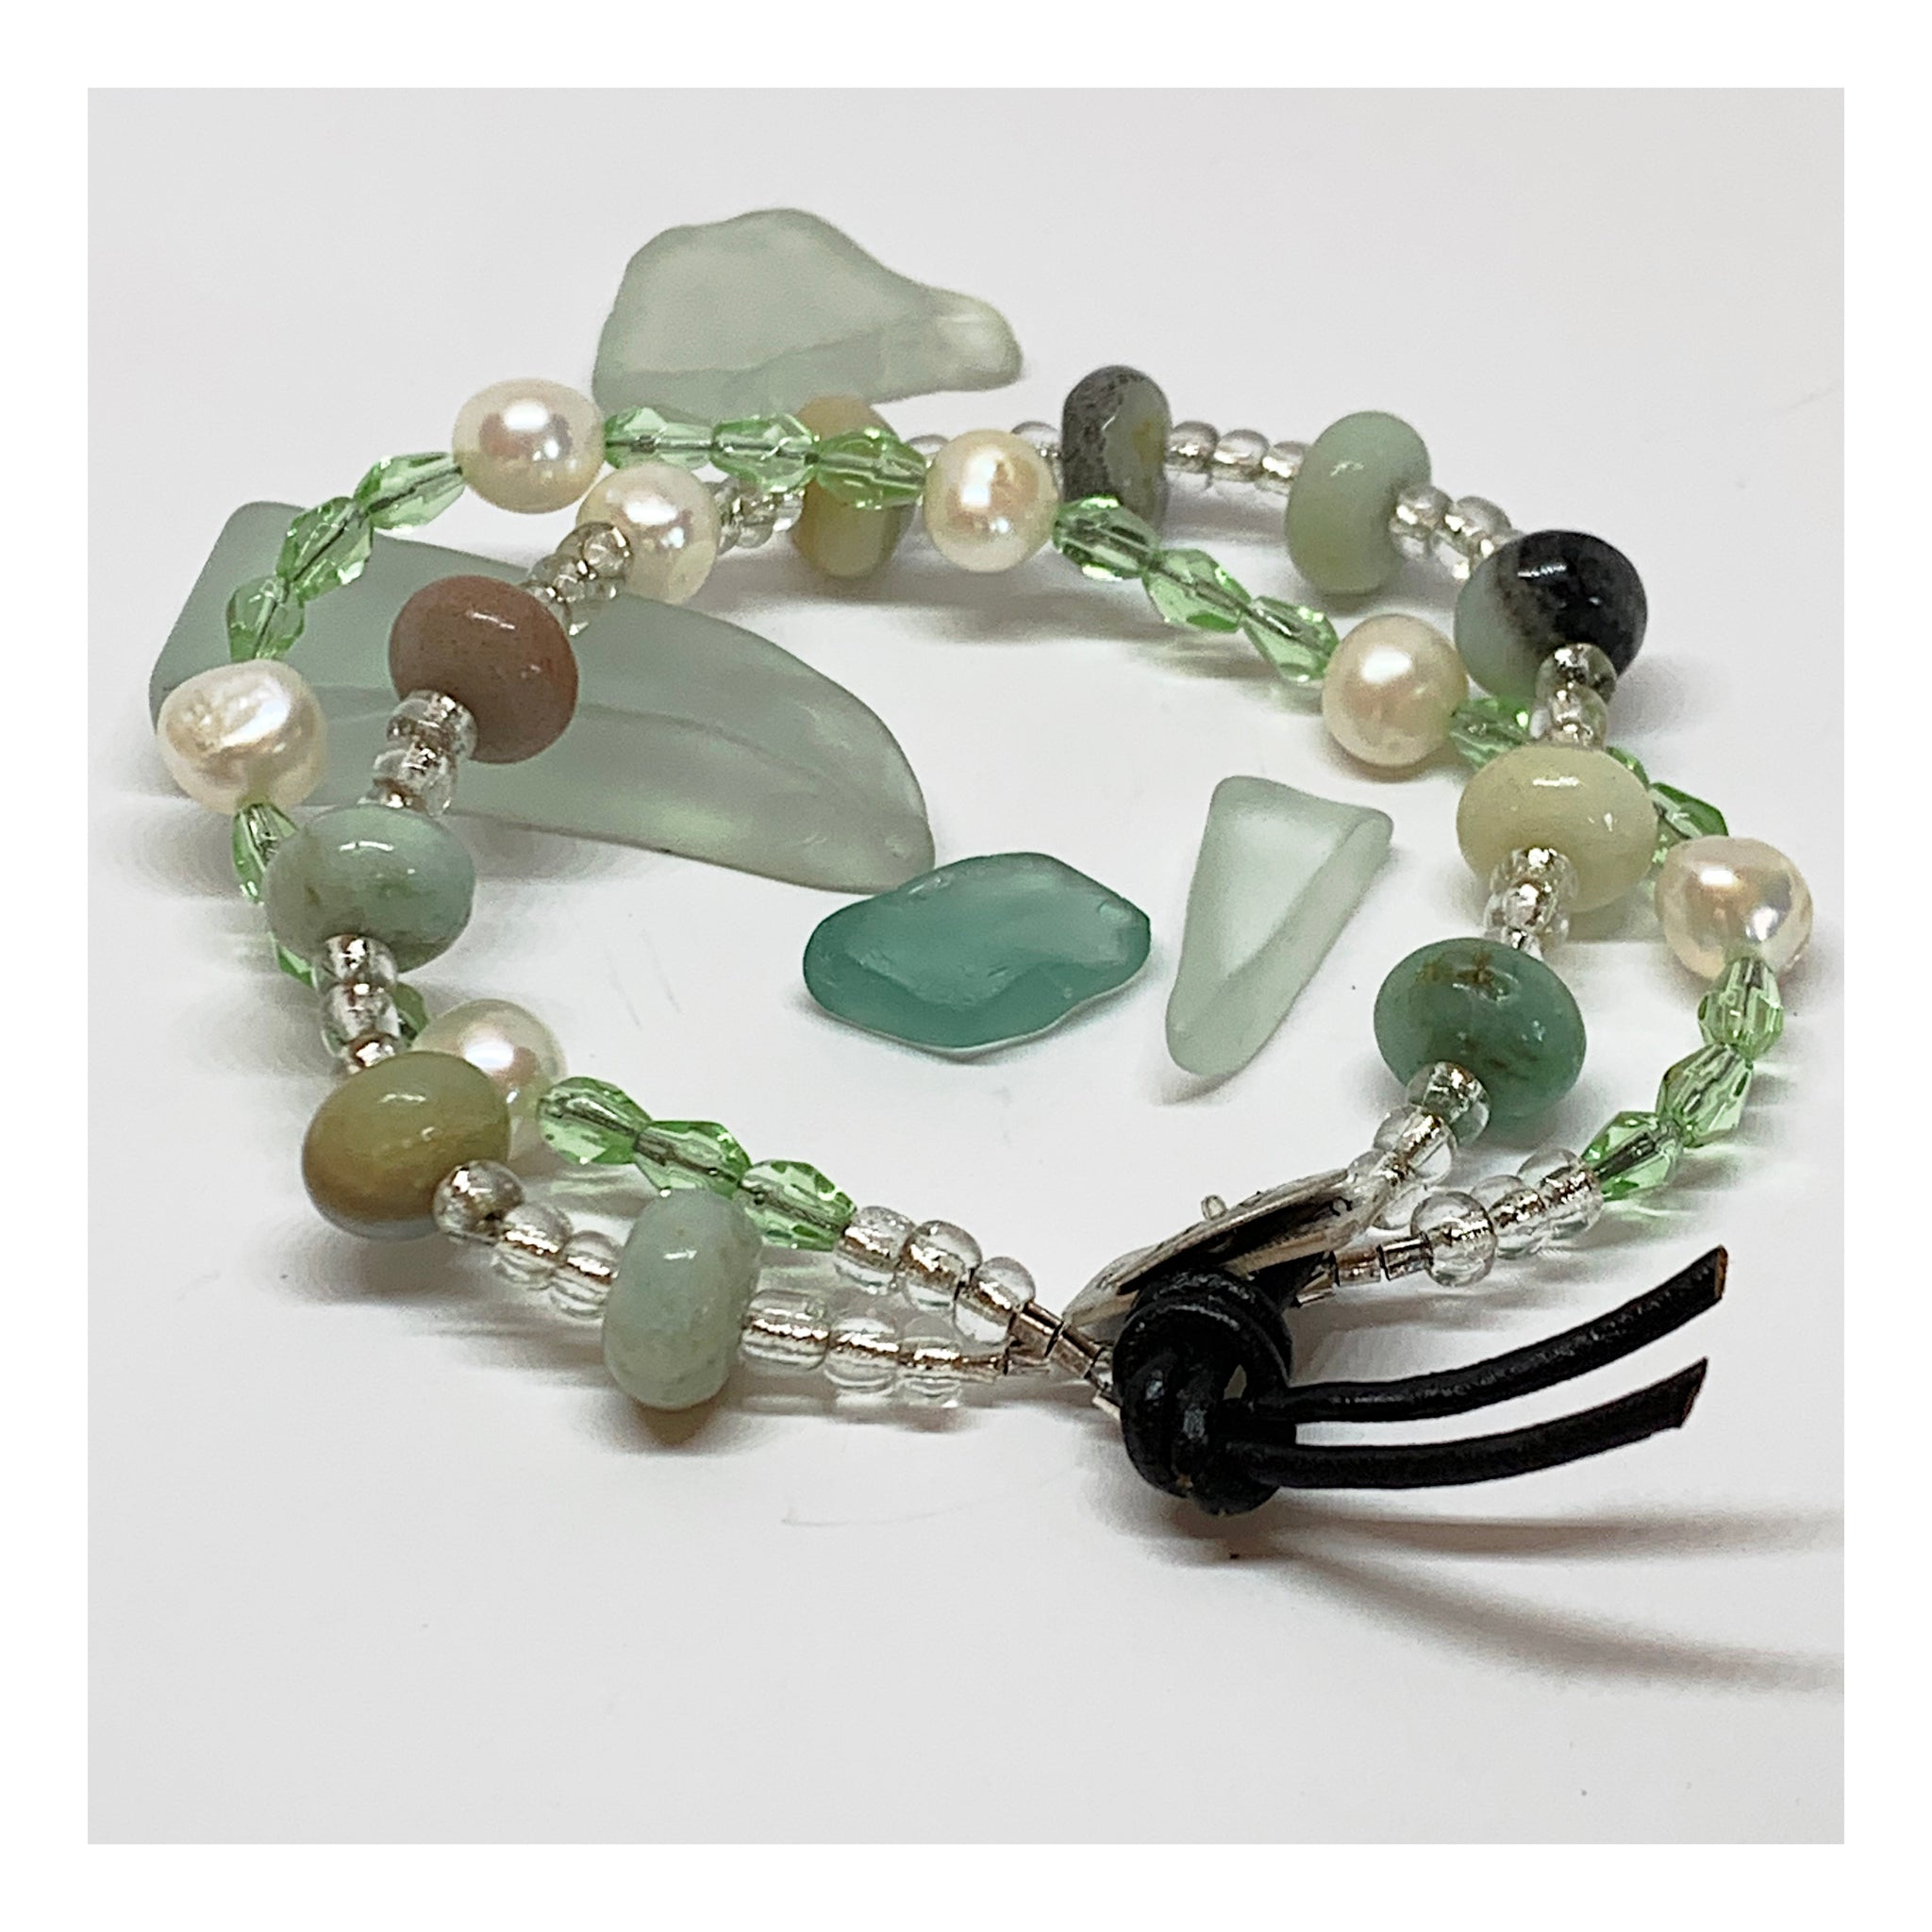 Contemporary Amazonite and Pearl Bead Bracelet - Trending Jewely - Mint Green